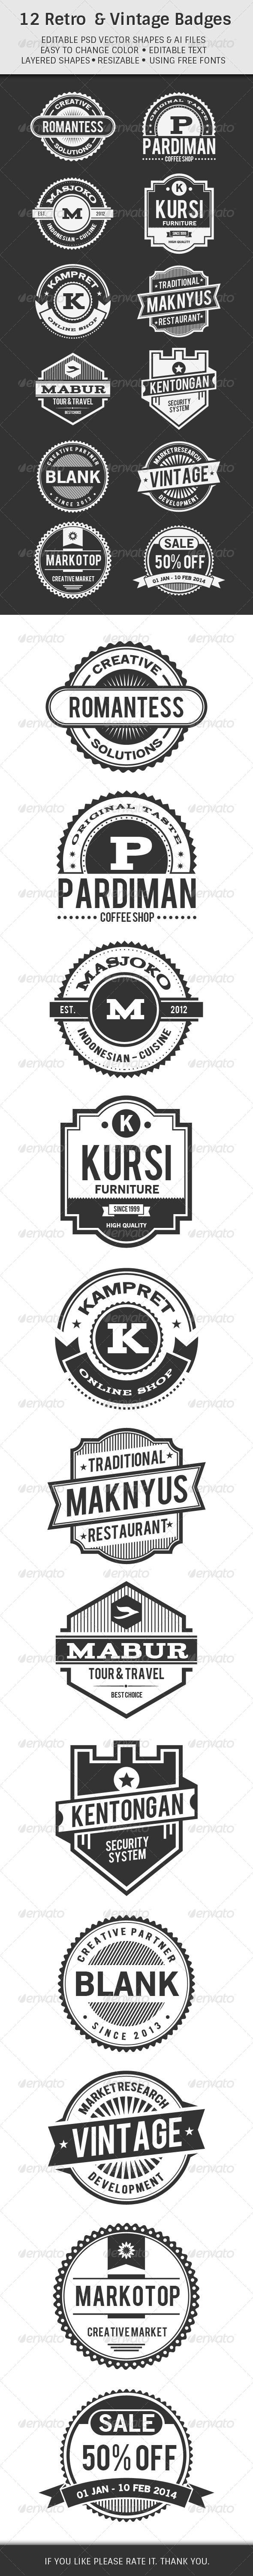 GraphicRiver 12 Retro & Vintage Badges 6386862